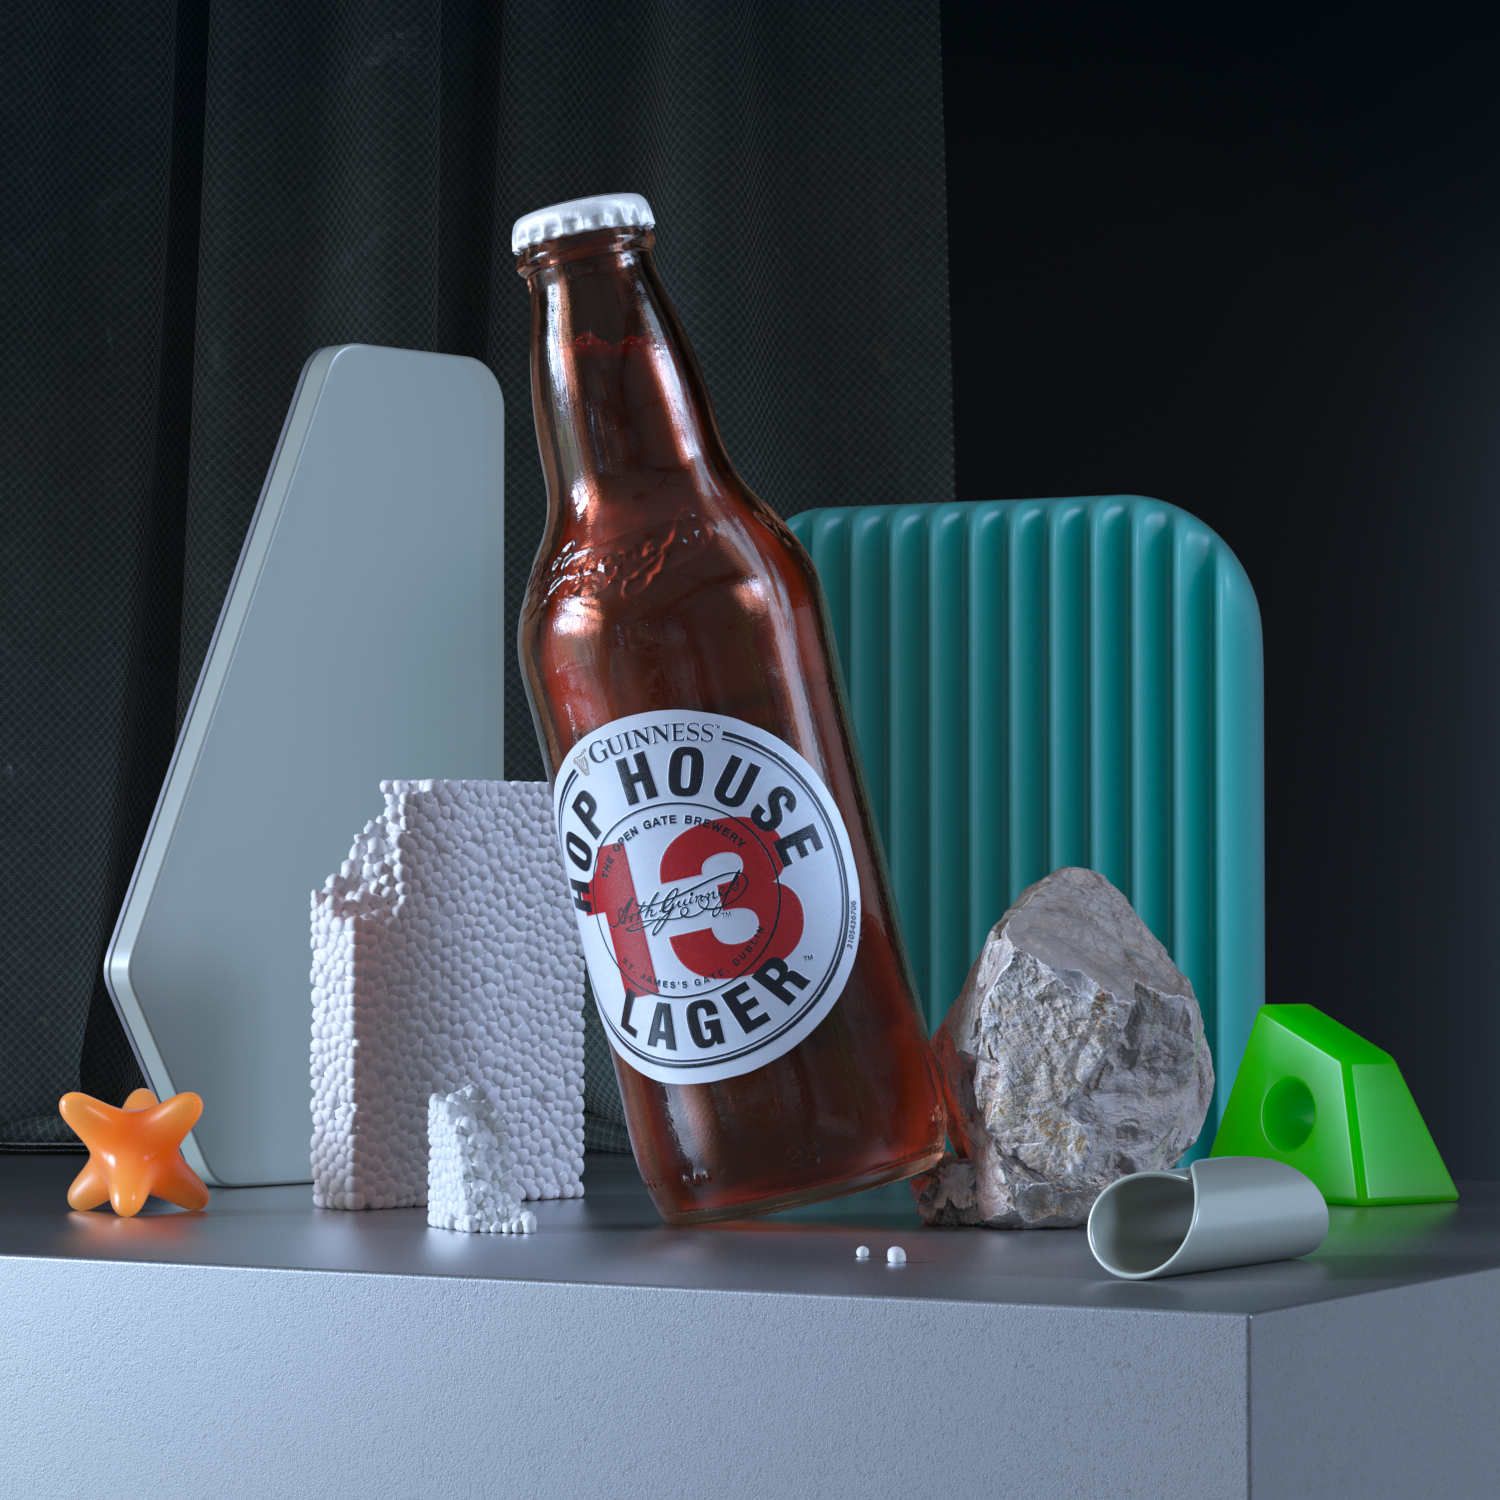 Still-Life 3D. Dissonance and curiosity with this set of incoherent elements that grabs your attention